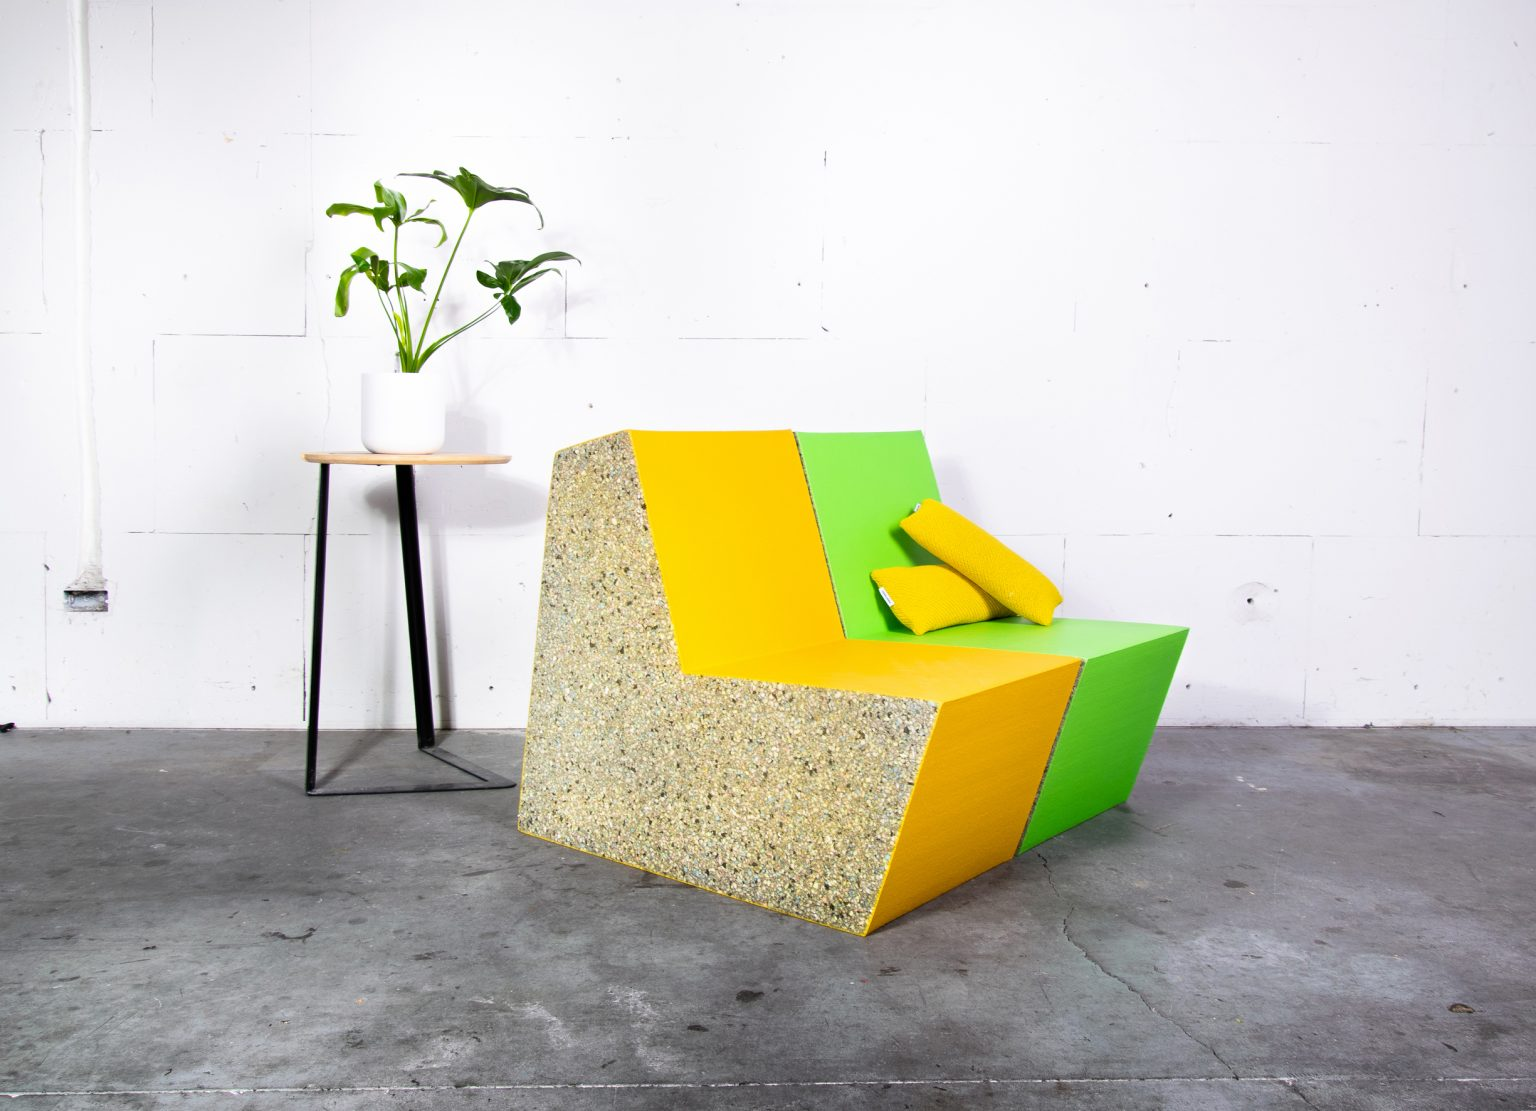 Biennale Interieur - Belgium's leading design and interior event - Primary-solo-recycled-phas-03.jpg